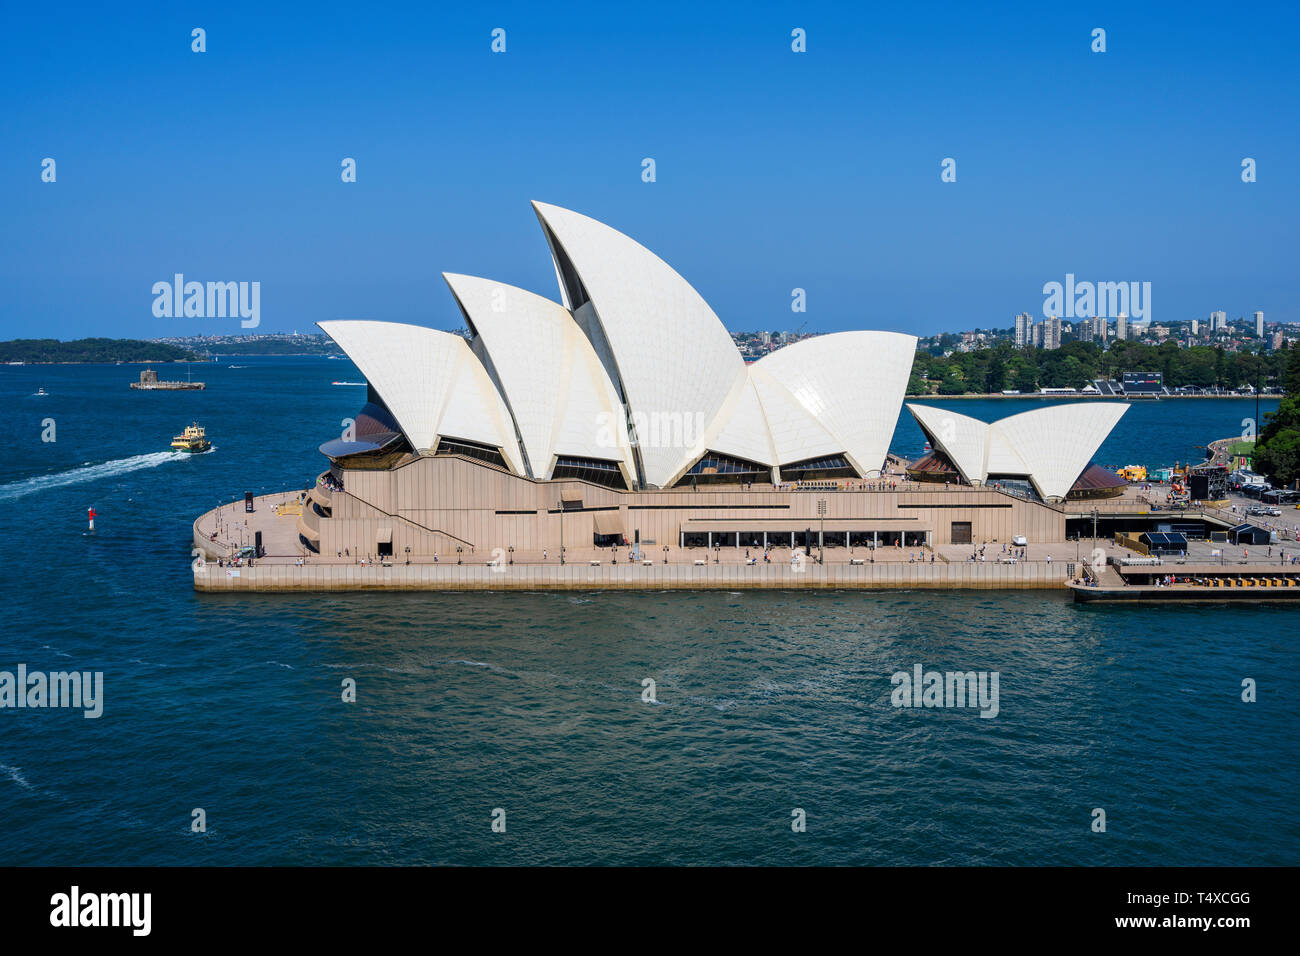 Sydney Opera House is a performing arts centre at Sydney harbour, New South Wales, Australia.  Designed by Jørn Utzon, it opened in 1973. - Stock Image